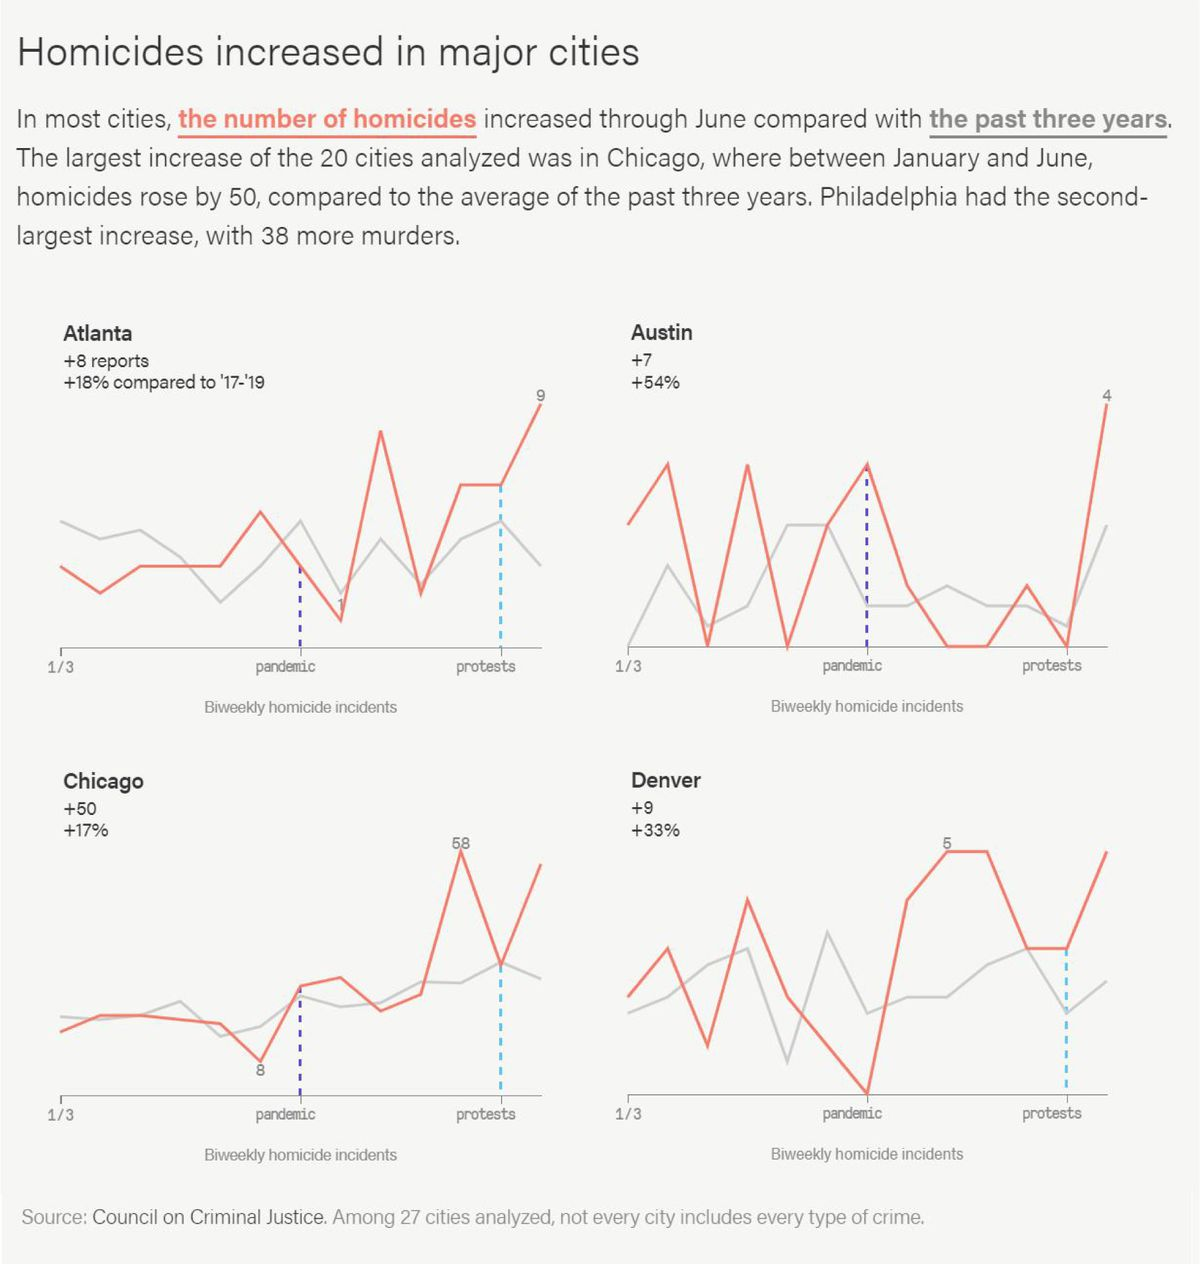 The police killing of an unarmed Black man in Minneapolis on May 25 sparked protests across the country. Compared with the past three years, in those first few days of unrest through June, reports of commercial burglaries surged before returning to normal levels just as quickly.